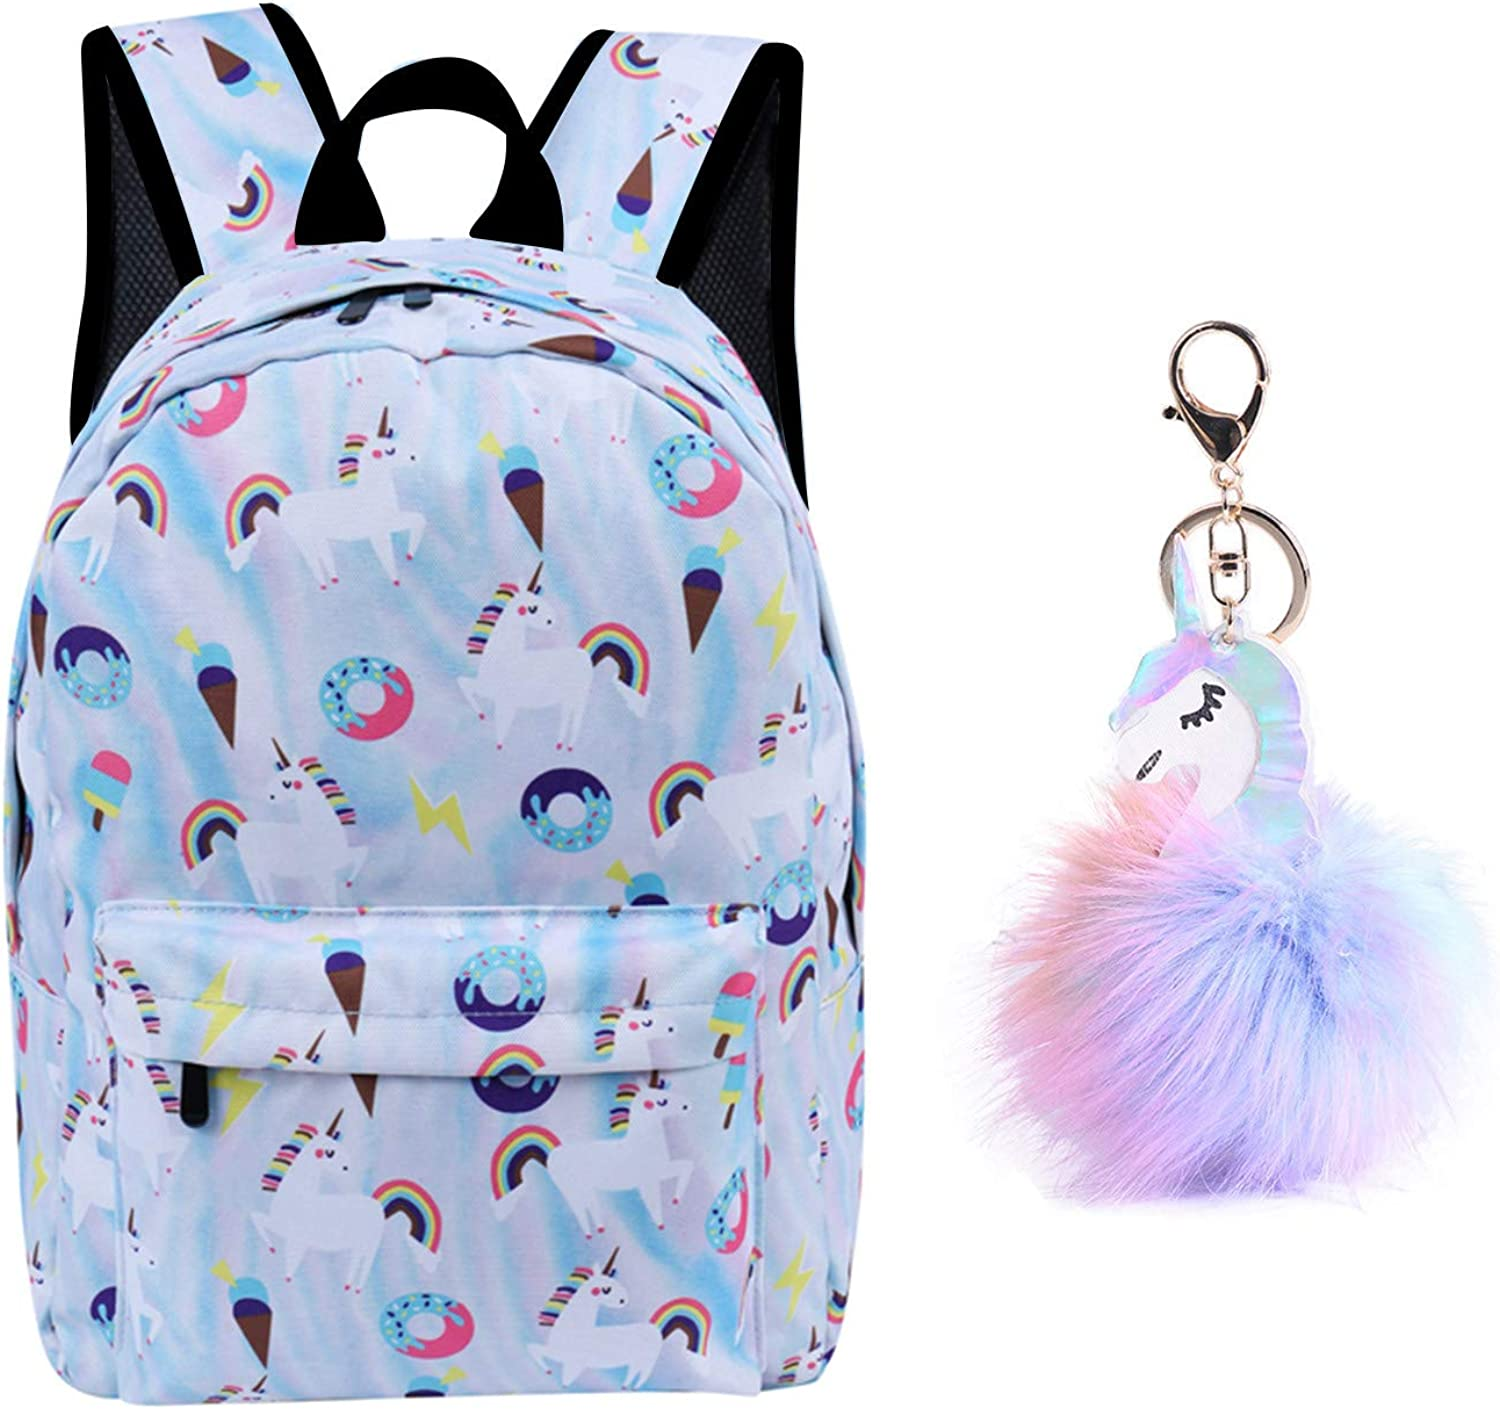 Backpack Little Girls Cute Unicorn Max 53% OFF Personalized Bags El Portland Mall Book for